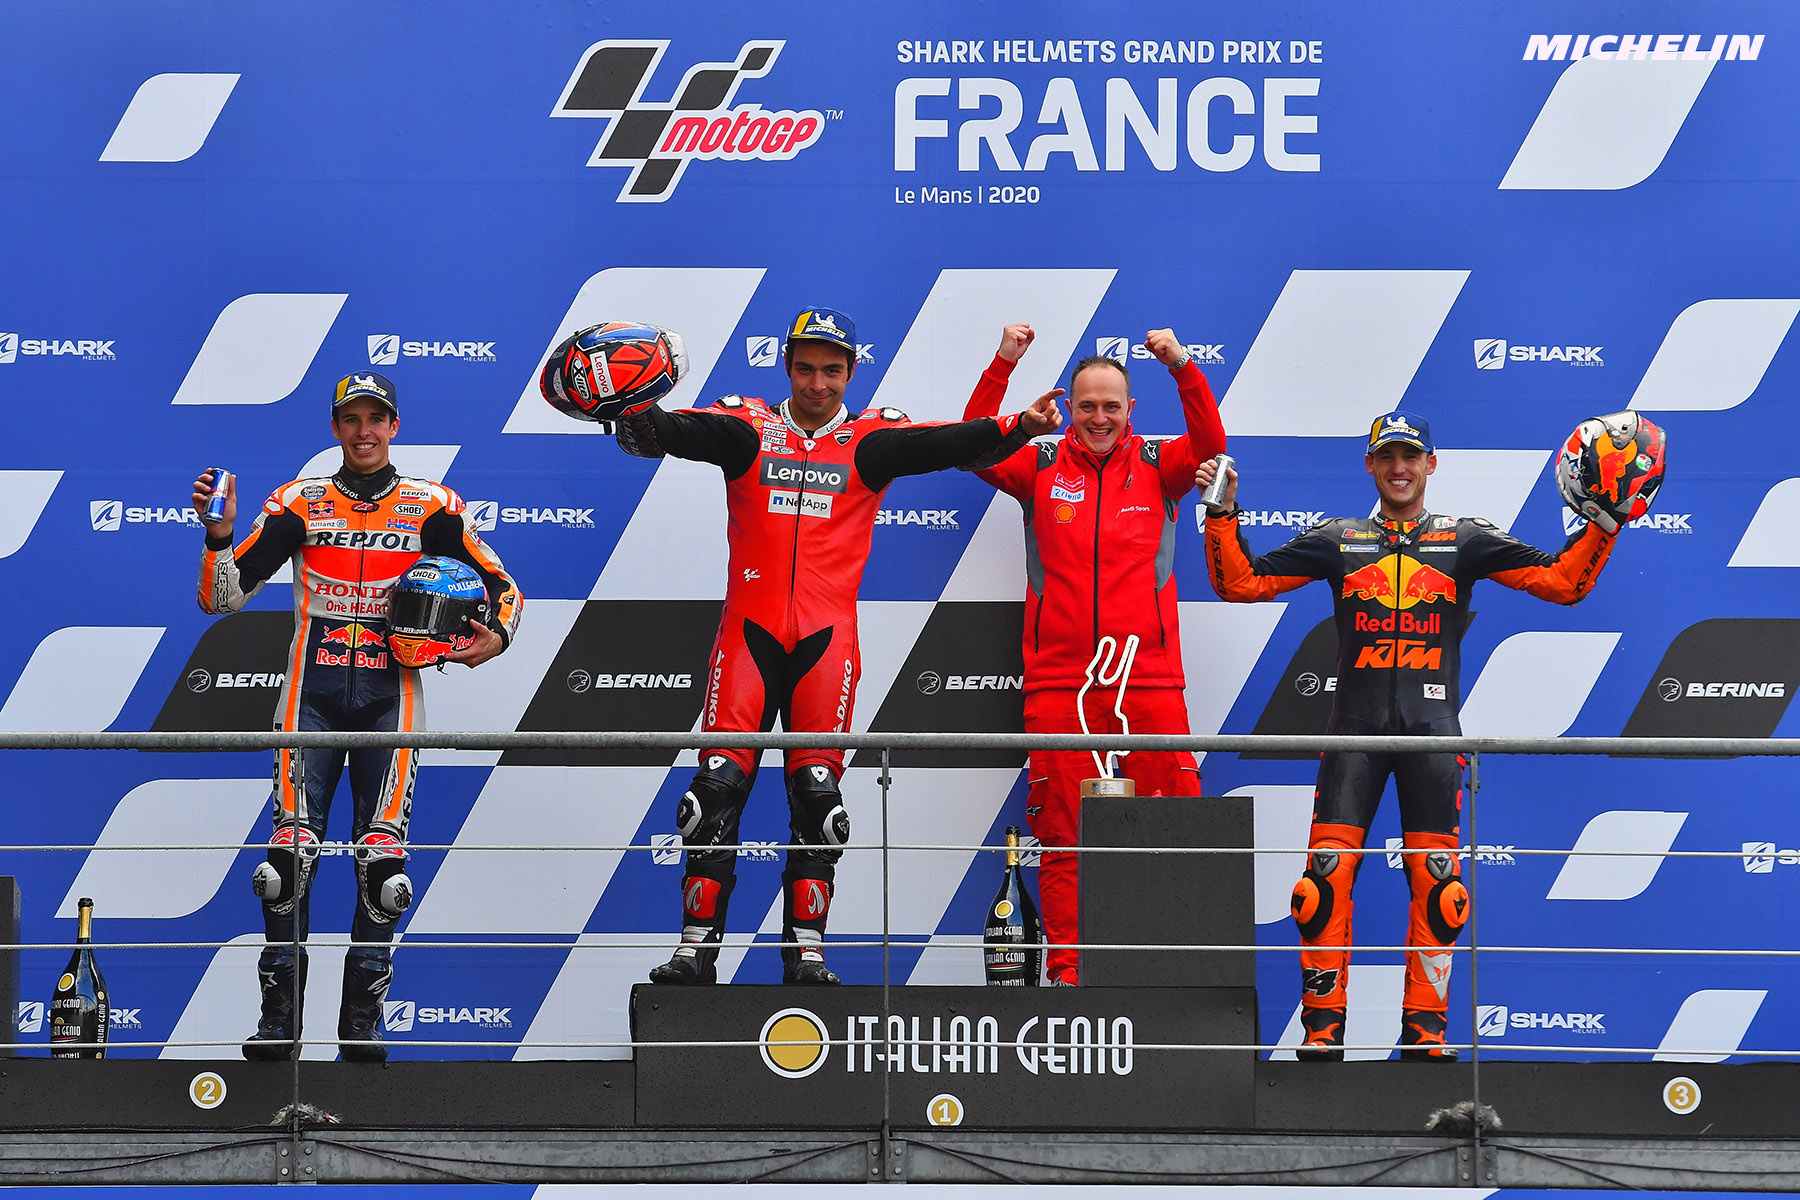 MotoGP™:  Petrucci wins at Le Mans aided by the exceptional grip delivered by his MICHELIN Power Rain tyres